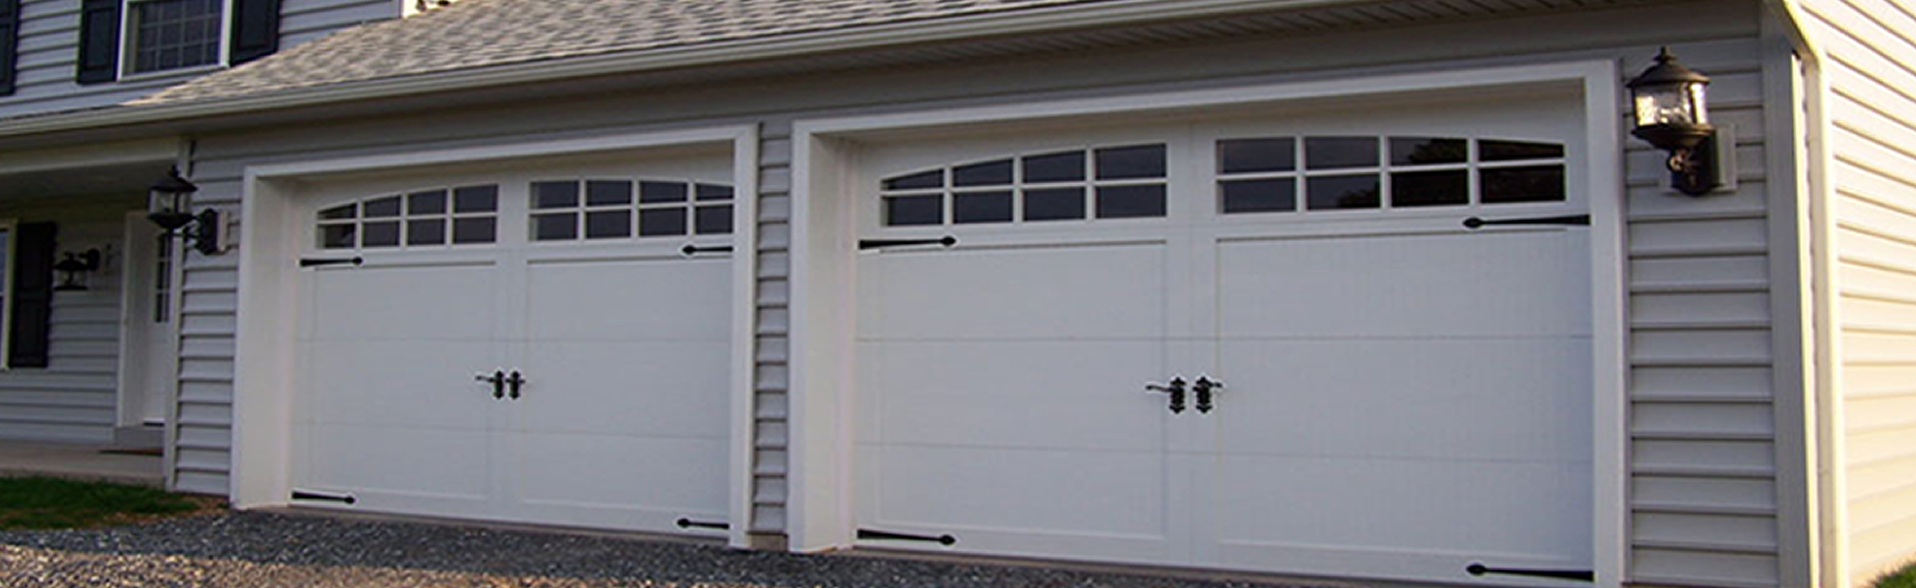 Anytime Garage Door Repair image 1